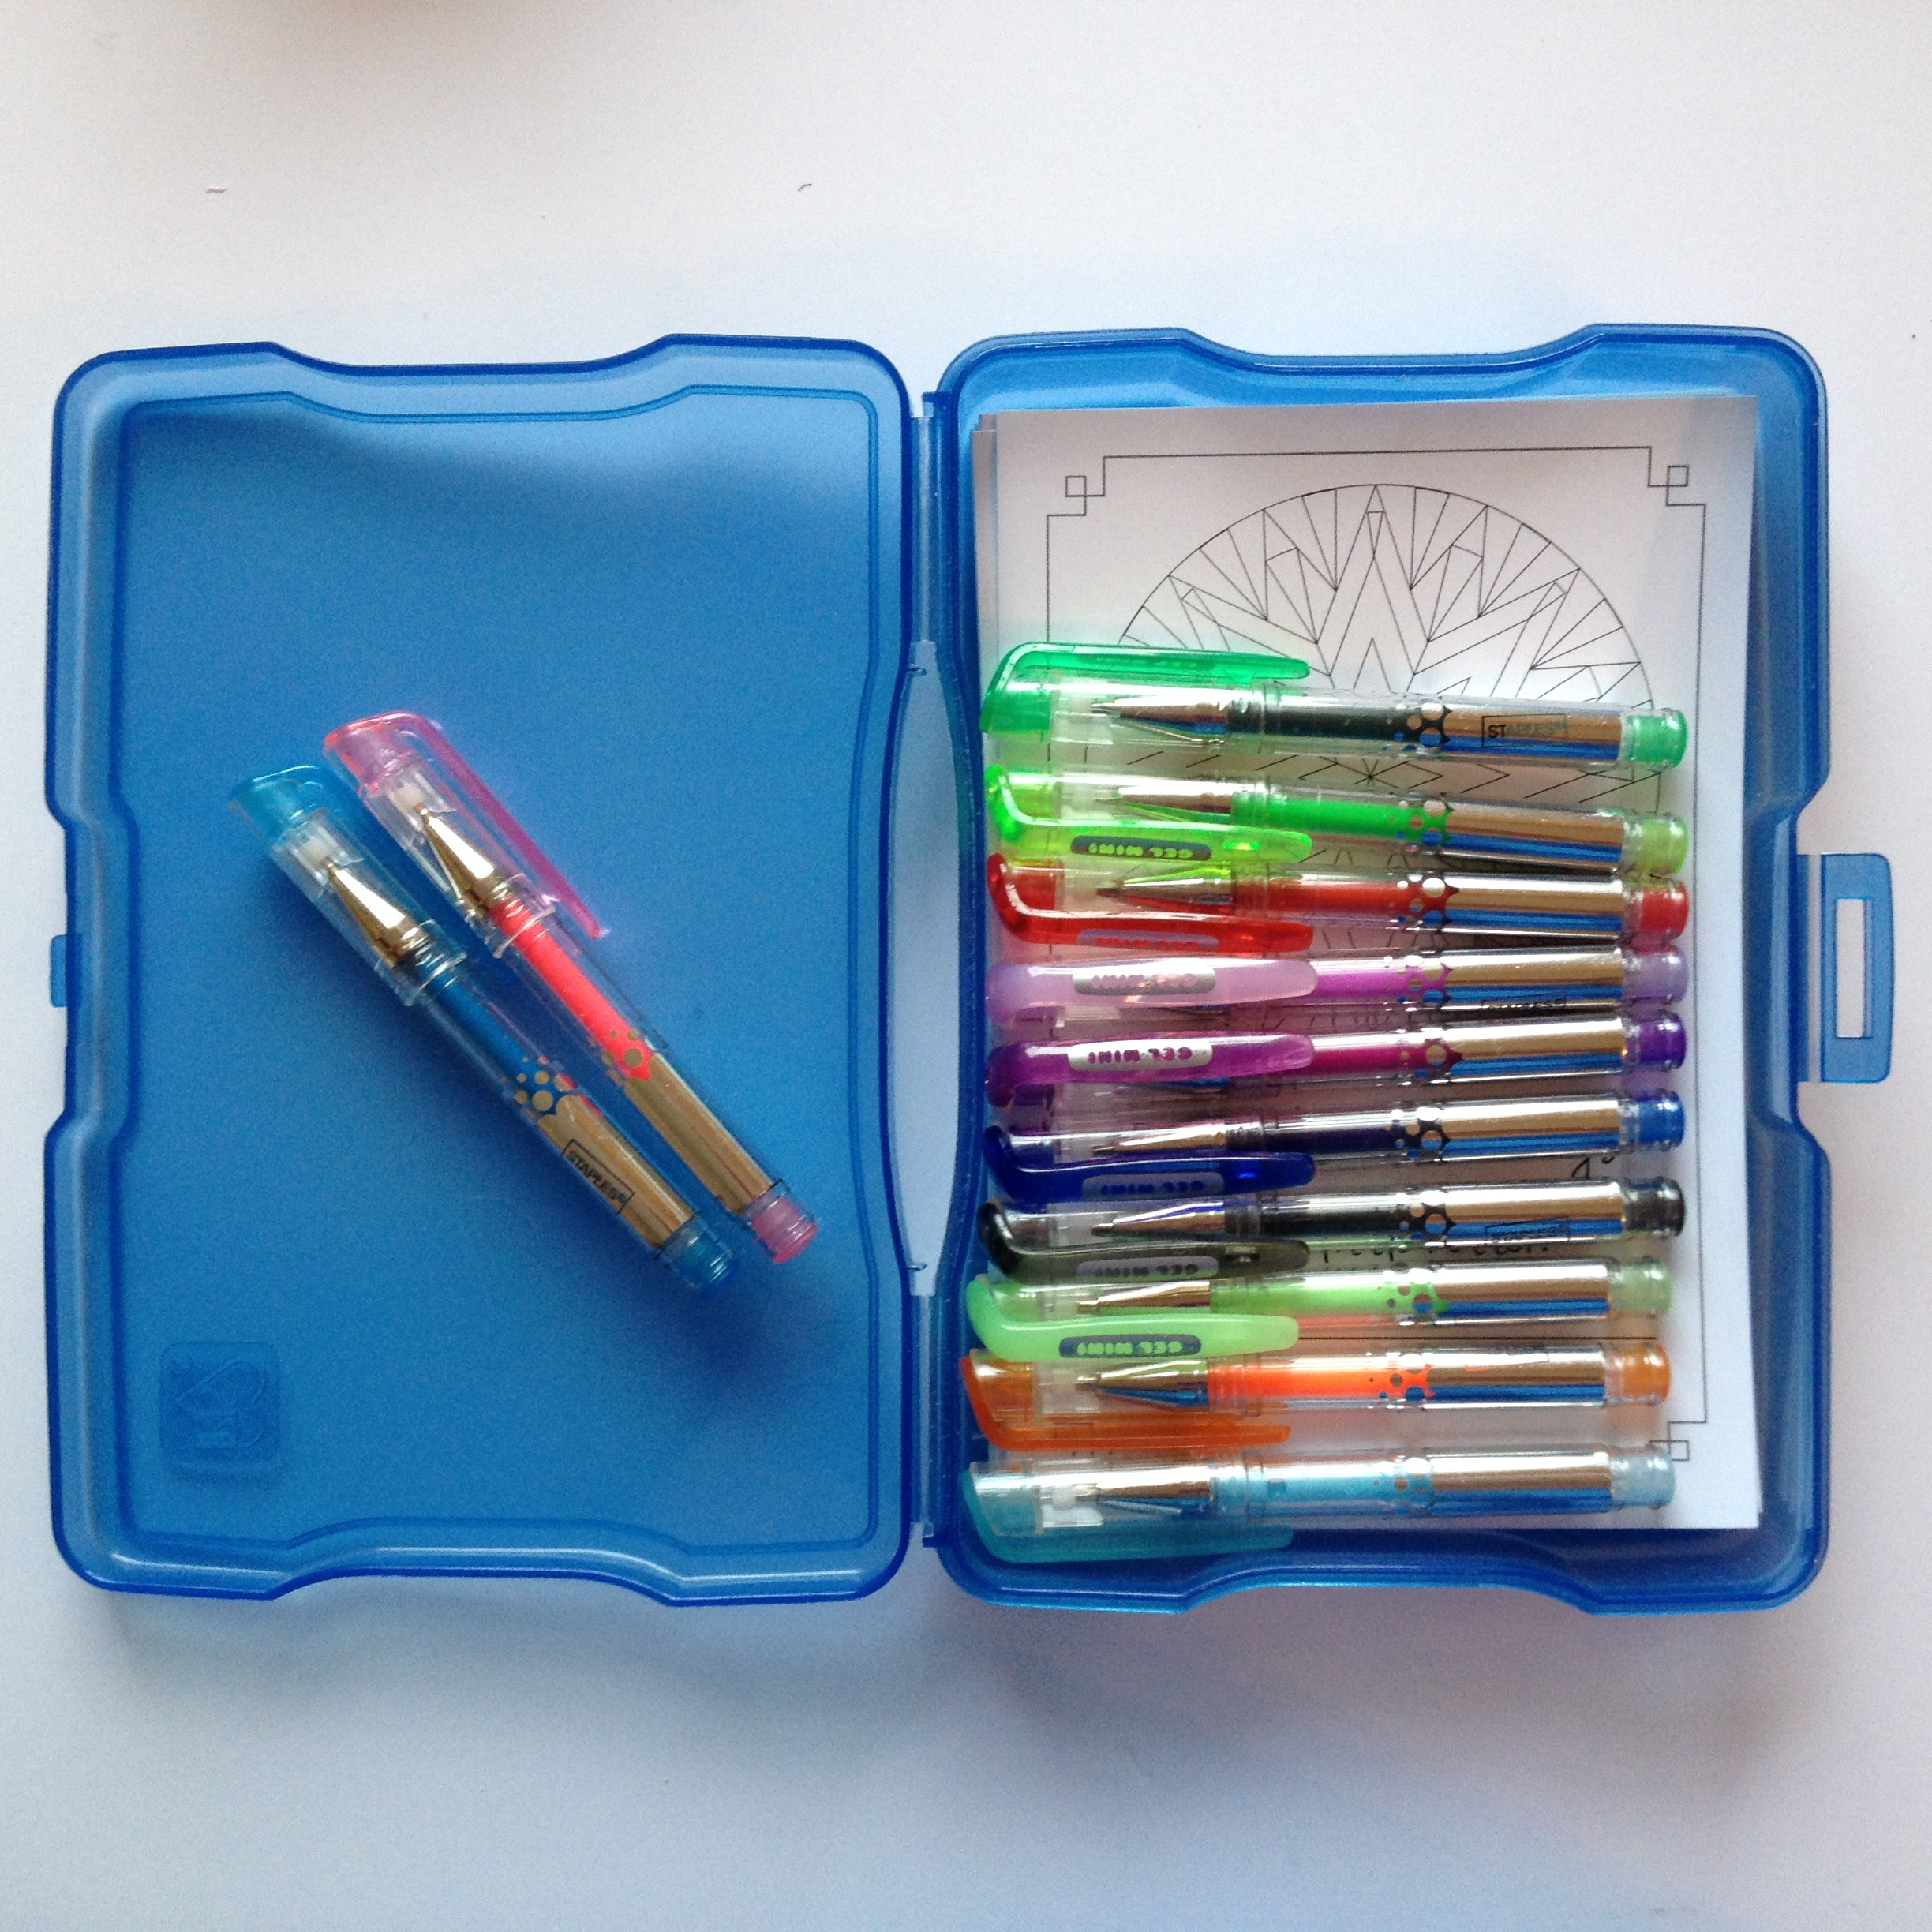 The mini-gel pens shown in an open plastic photo storage case. Mandala cards (shown behind the pens) fit nicely behind the pens, to make a handy, self-contained colouring kit.